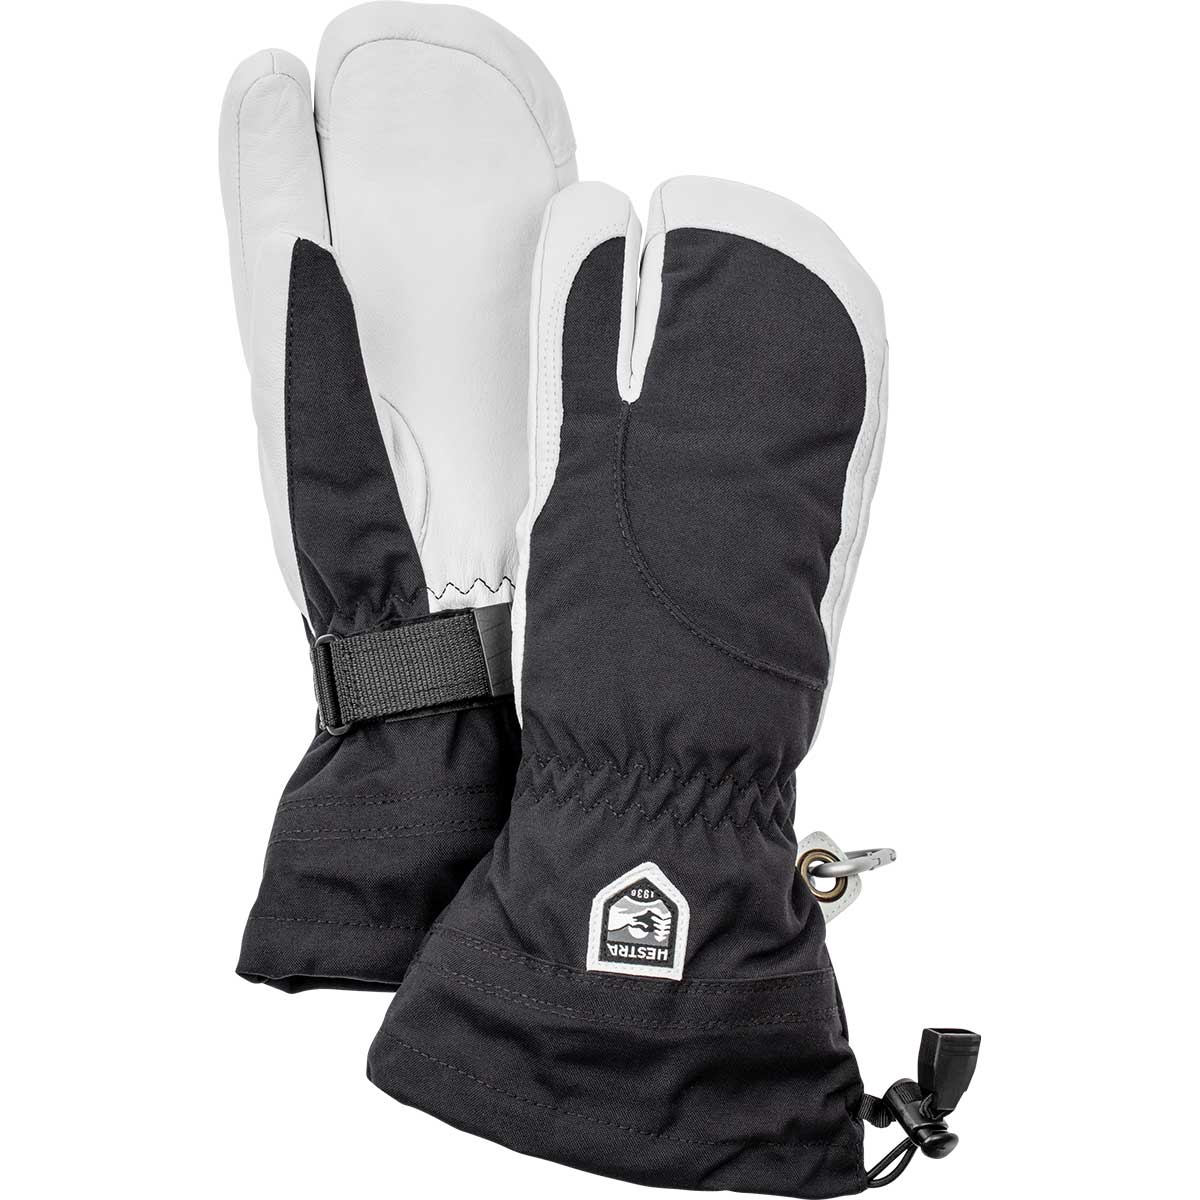 Hestra women's Heli Ski 3-Finger Glove in black and off white